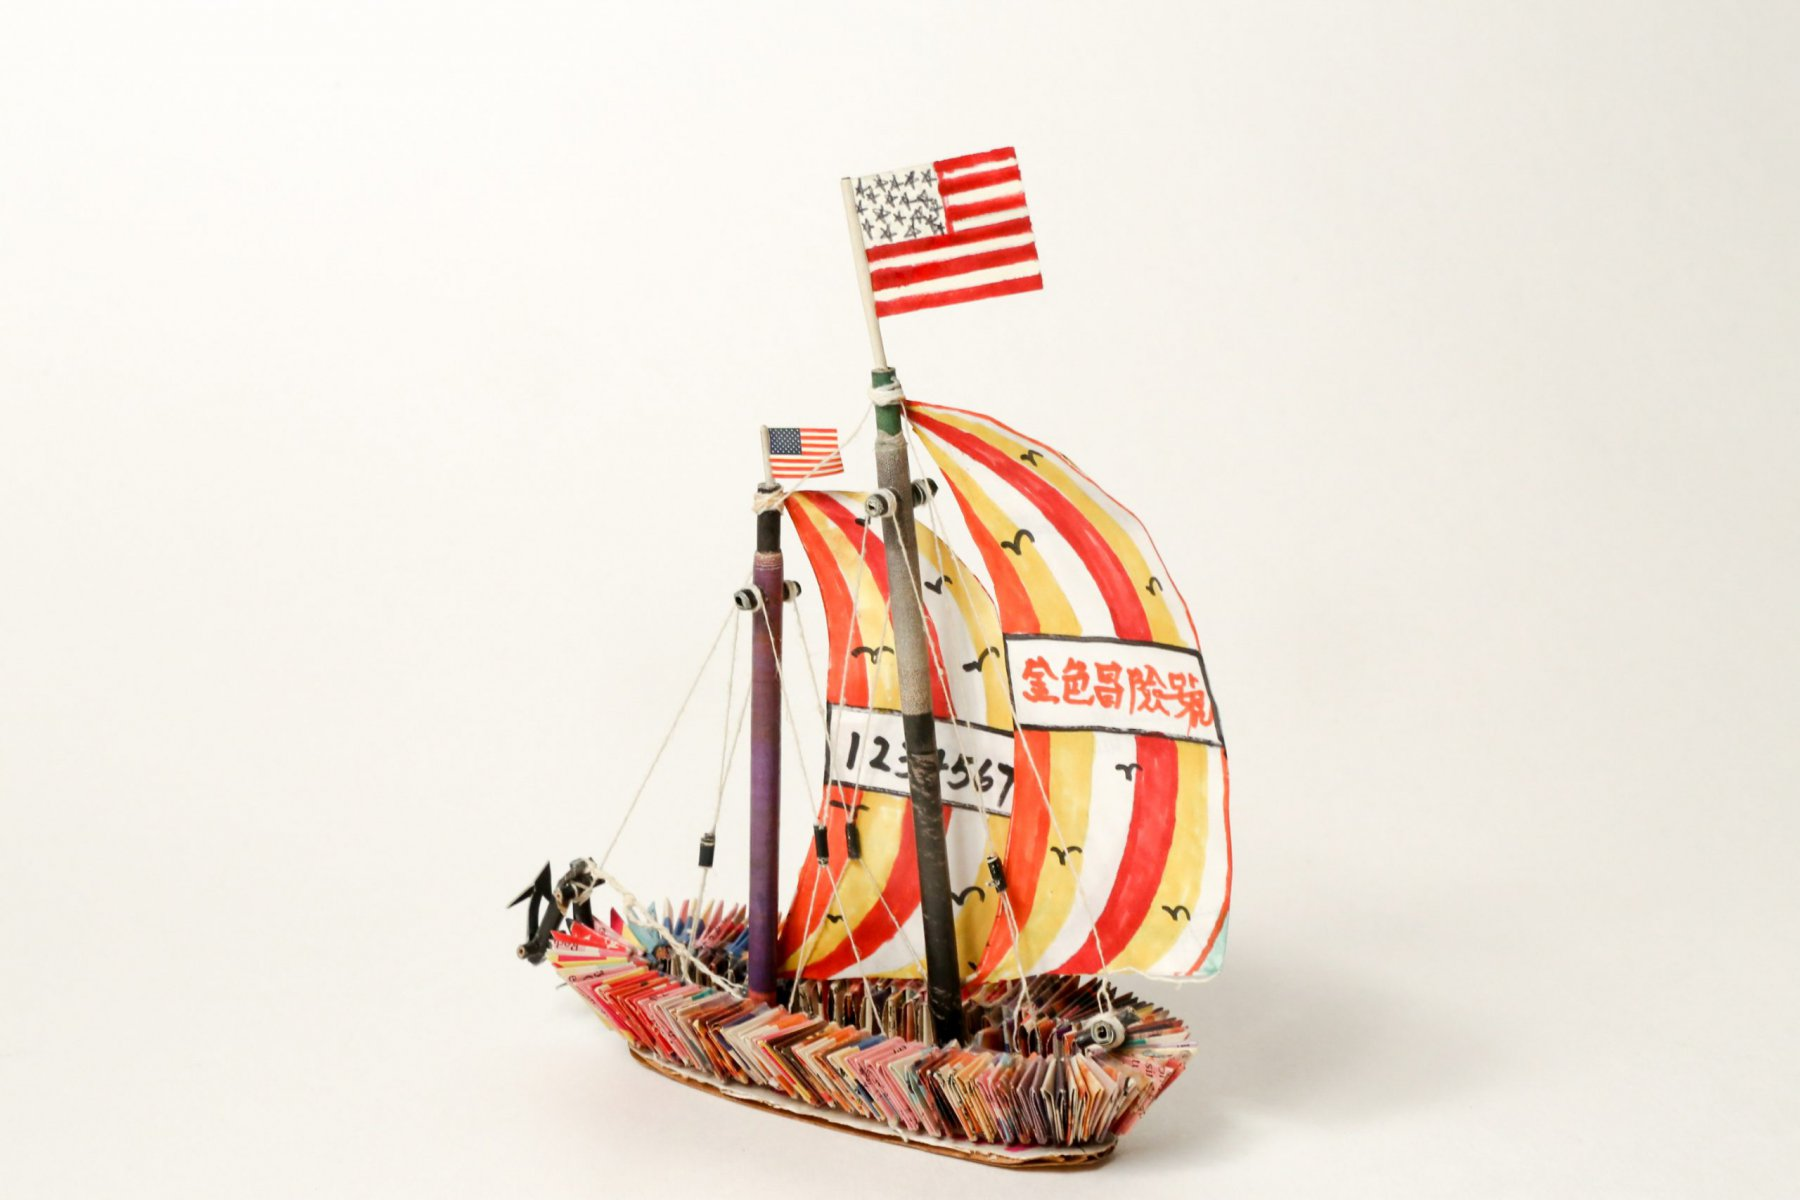 Sailboat (Golden Venture, Golden Vision), 1995, folded magazine pages, rolled and cut white paper, cardboard, thread, liquid glue and colored marker, Museum of Chinese in America (MOCA) Collections